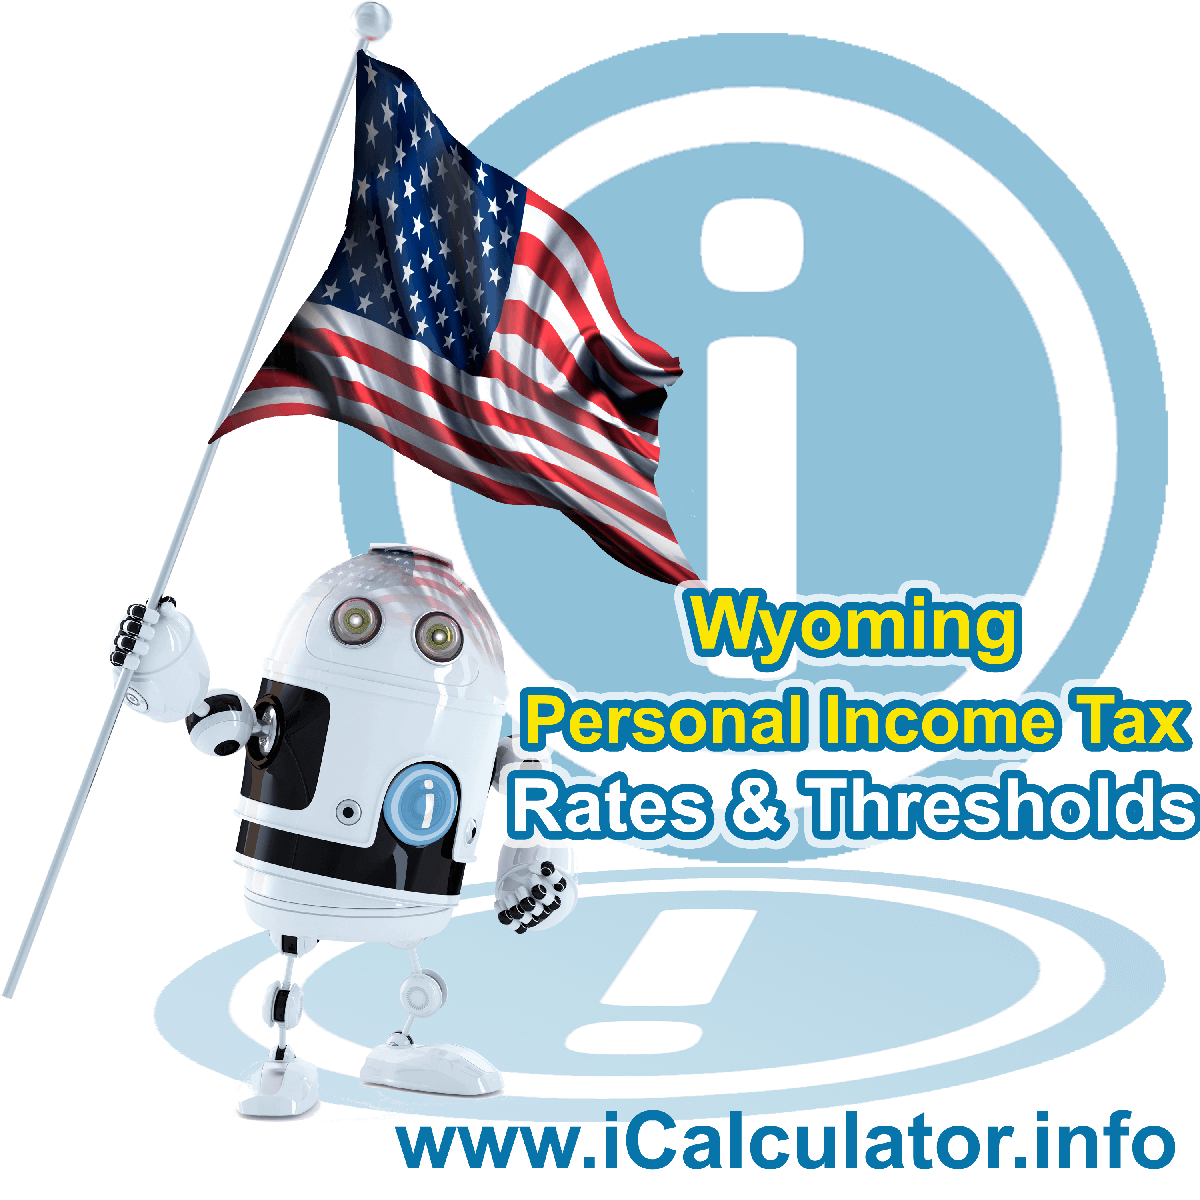 Wyoming State Tax Tables 2018. This image displays details of the Wyoming State Tax Tables for the 2018 tax return year which is provided in support of the 2018 US Tax Calculator